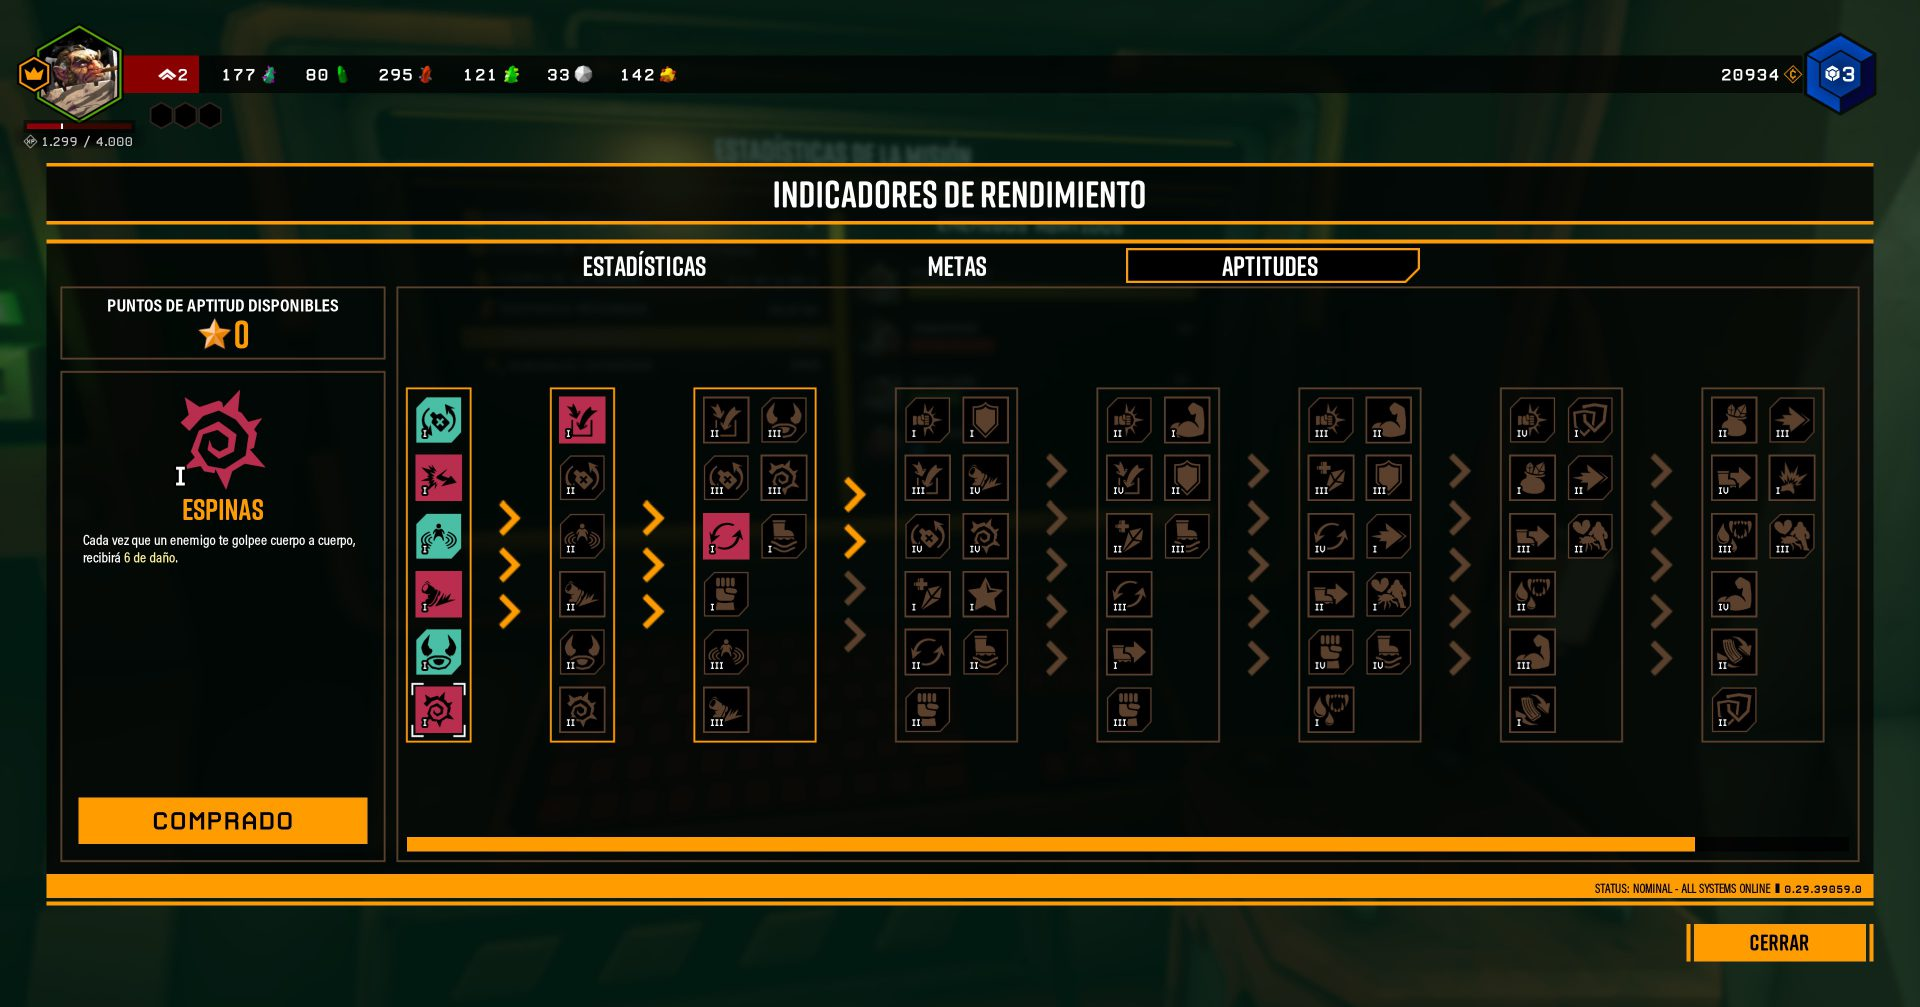 The skill points are used in character development in the Deep Rock galactic